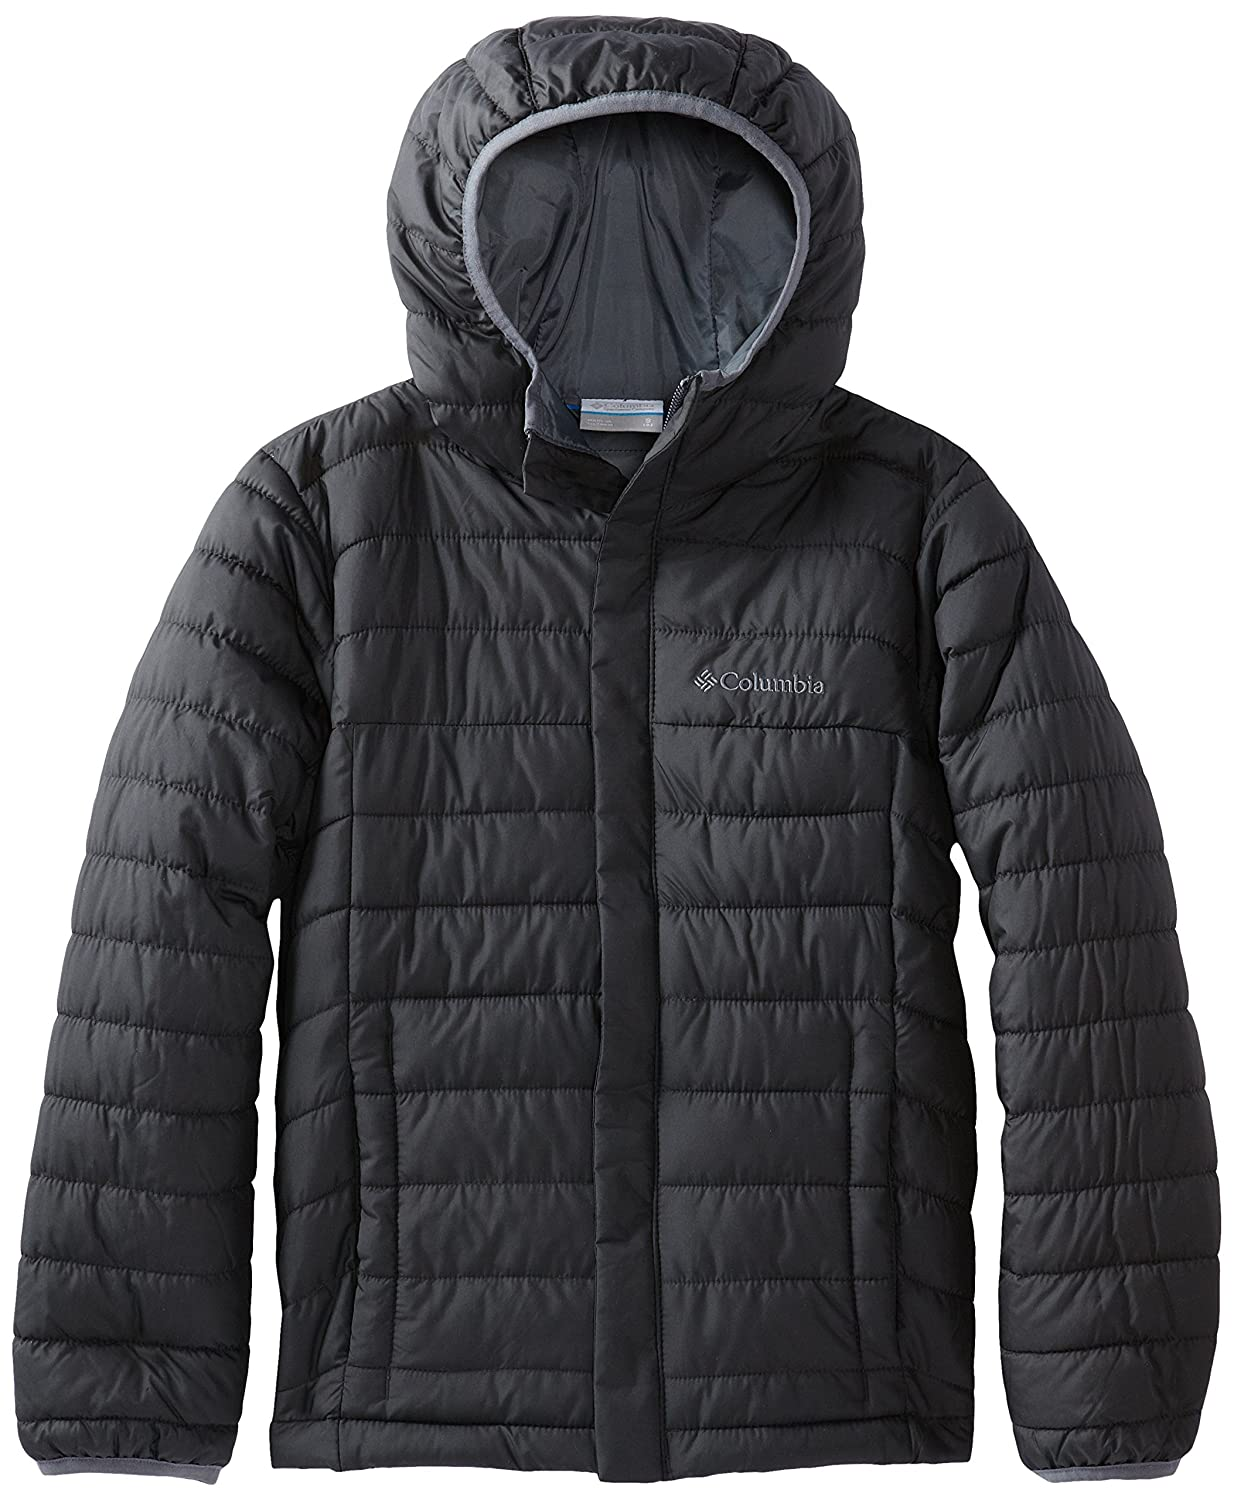 Columbia Boys' Powder Lite Puffer Jacket Columbia Boys 2-7 SB5493-010